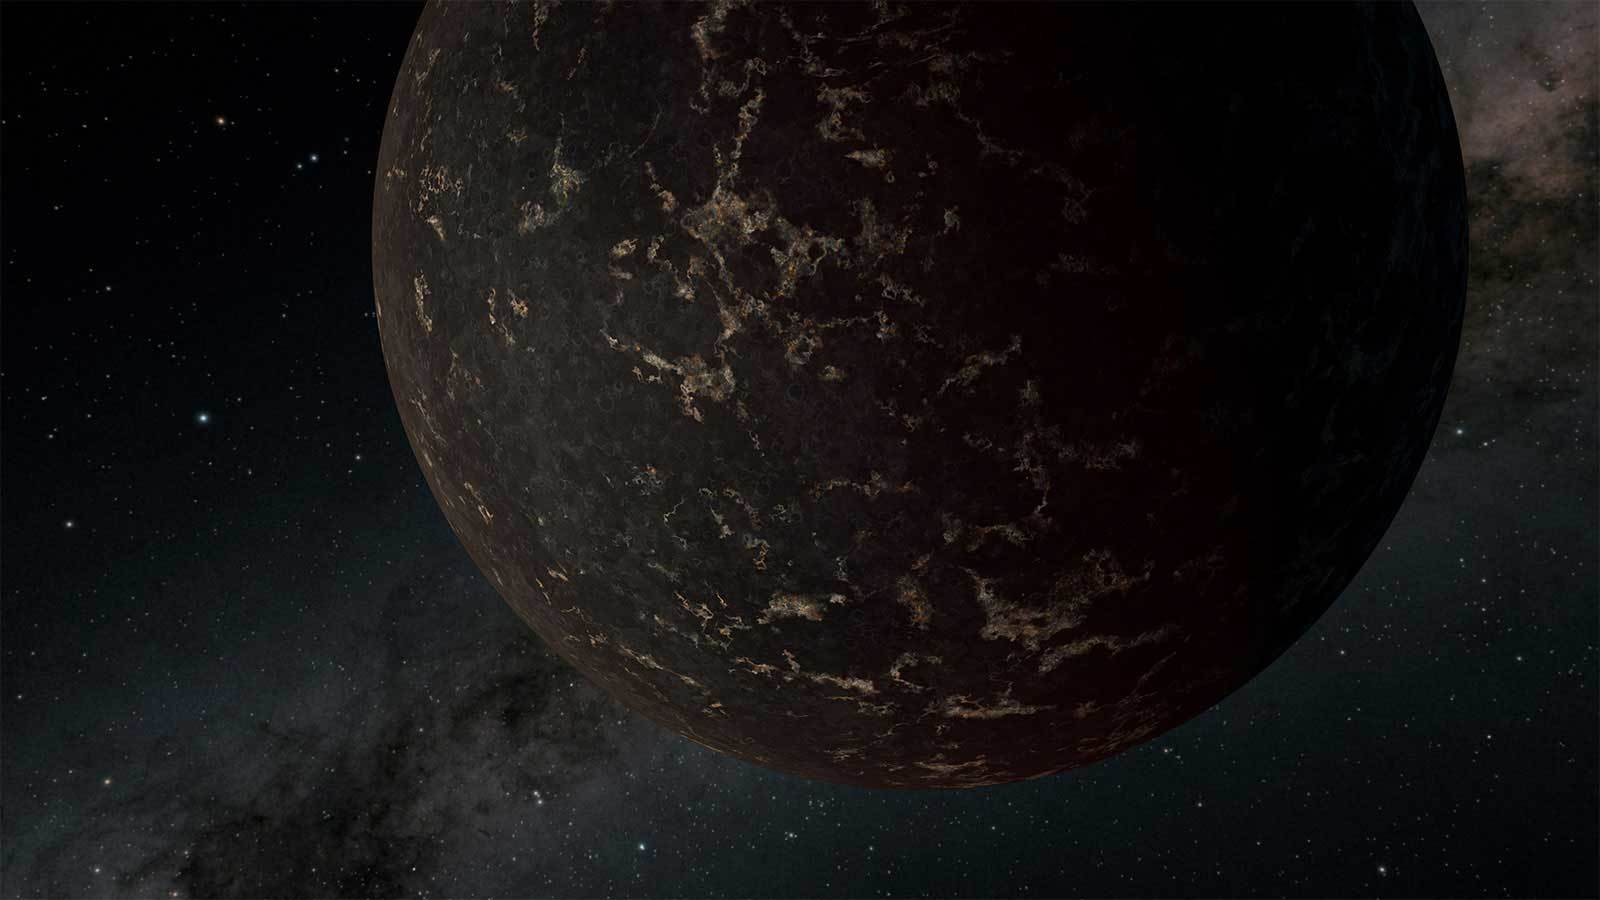 This artist's illustration depicts the exoplanet LHS 3844b as dark and covered in cooled volcanic material.